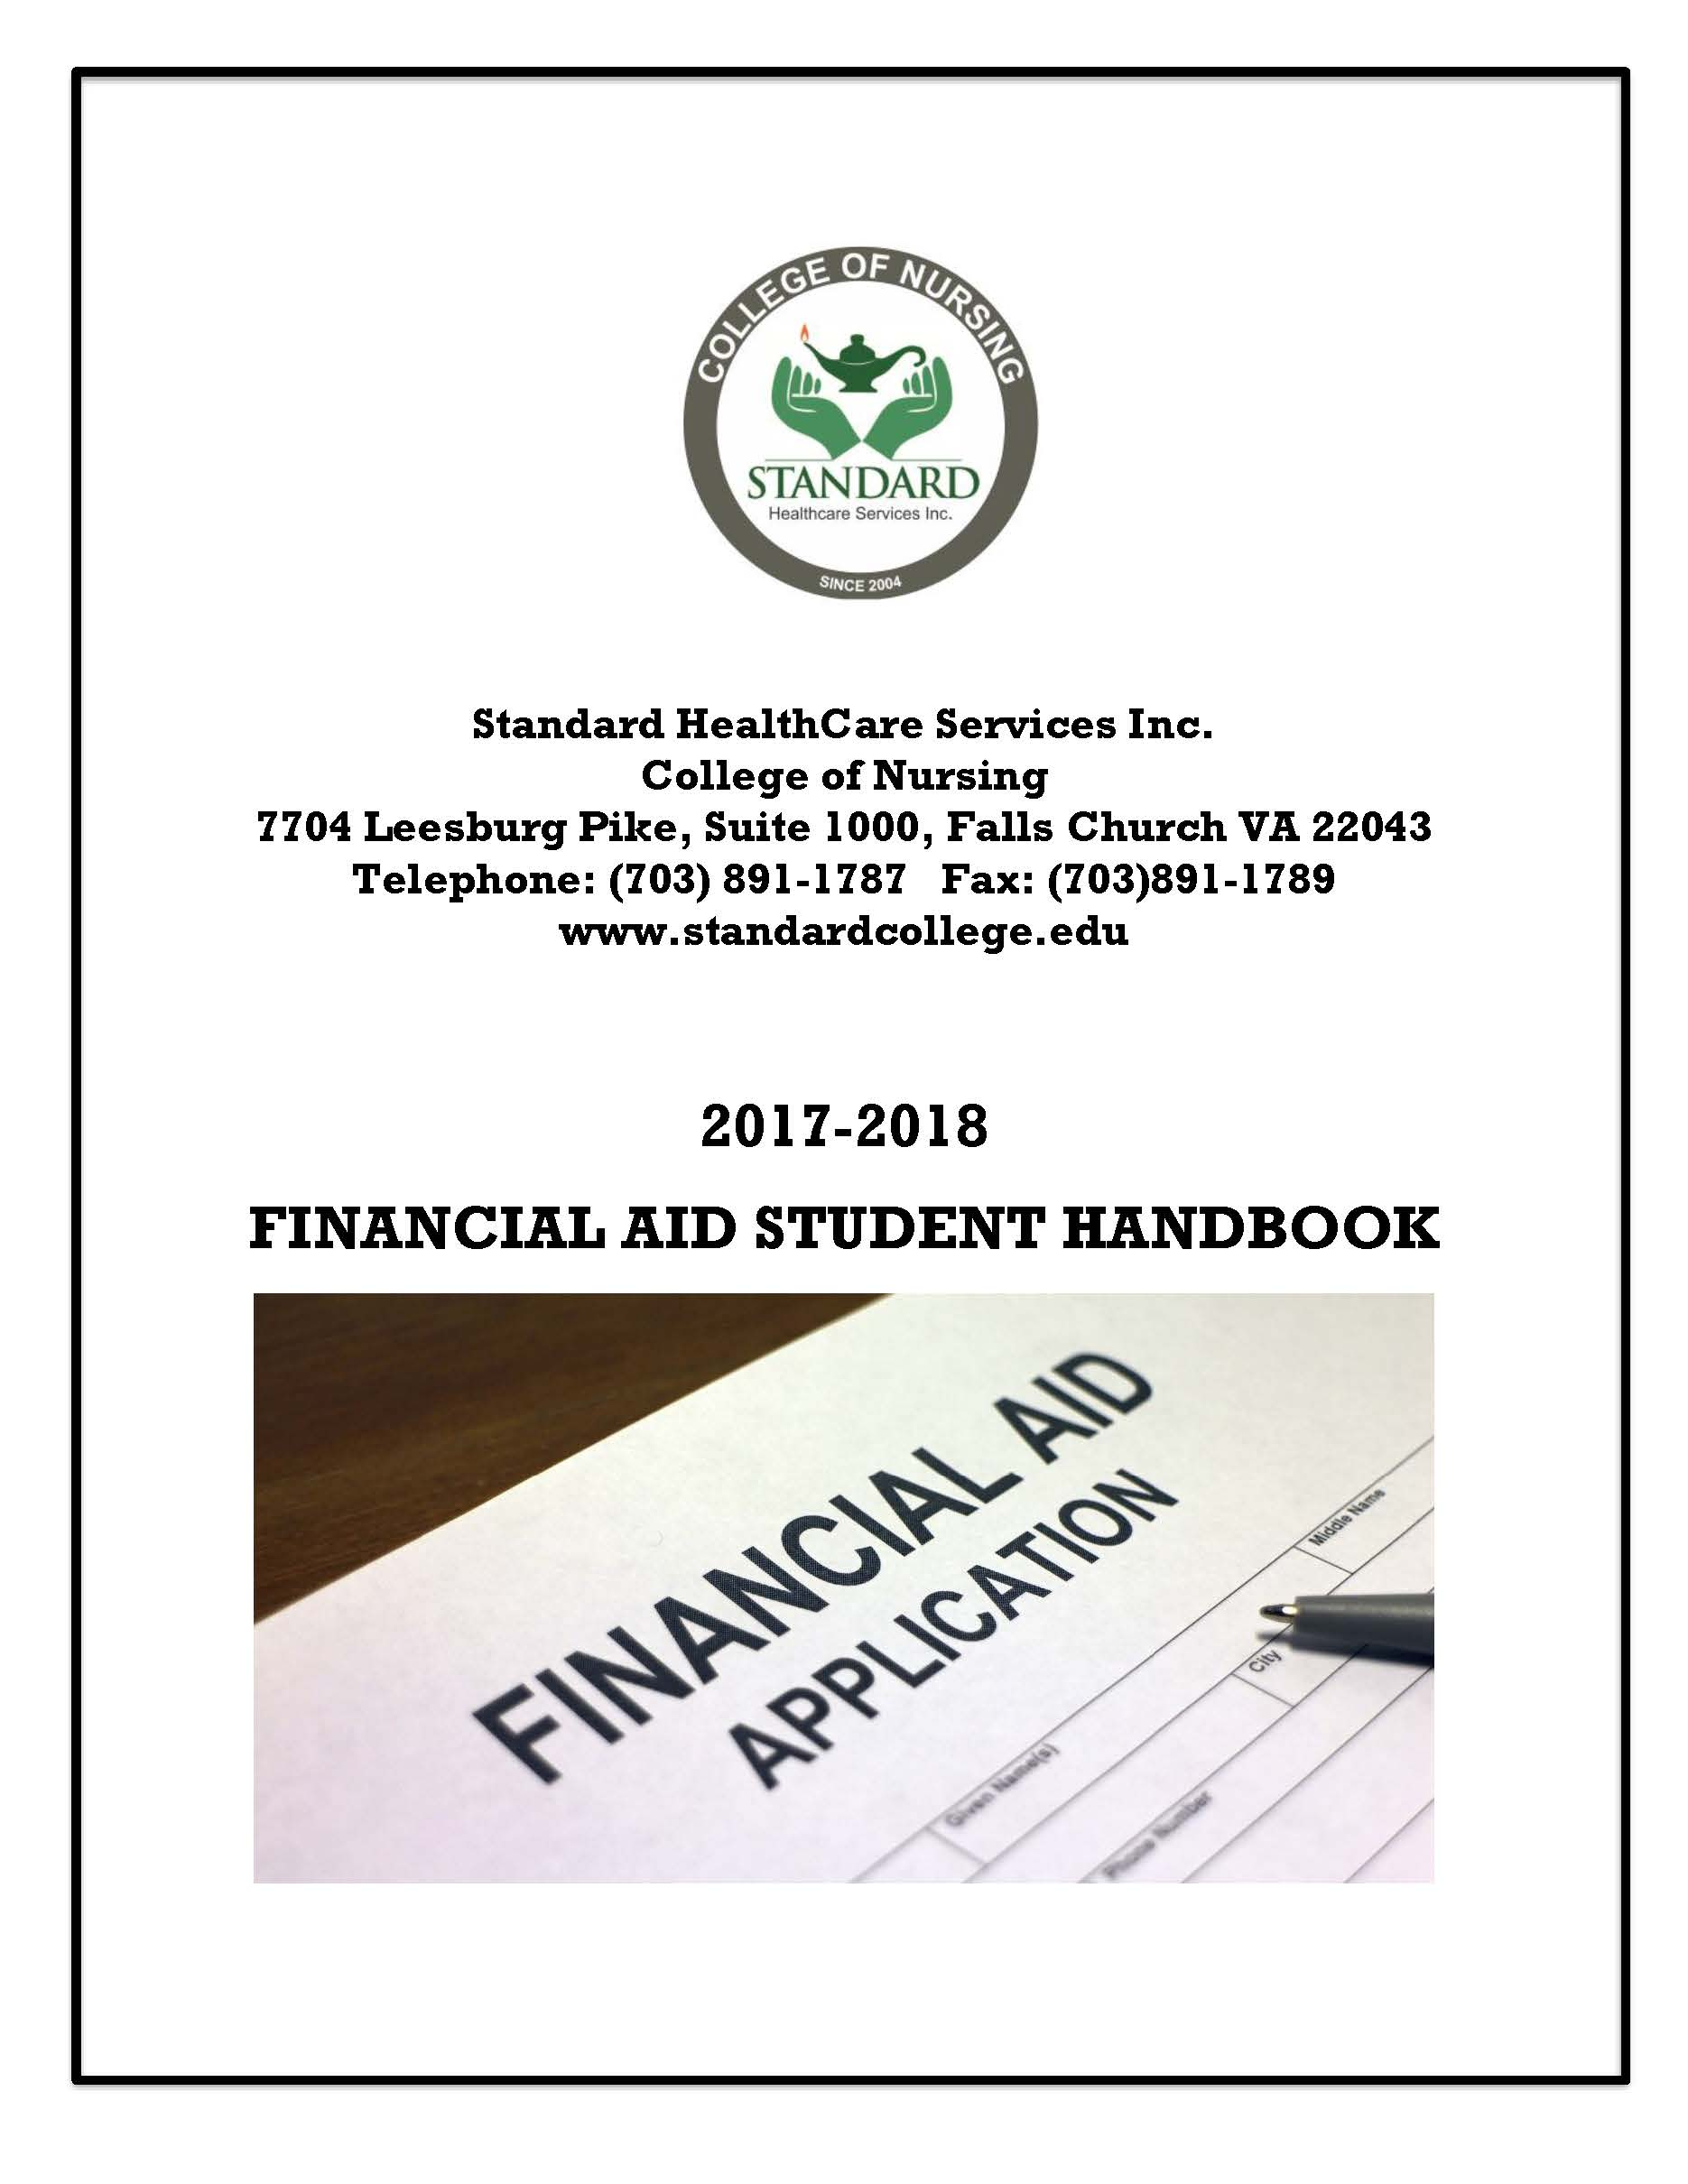 Financial Aid Policy Handbook